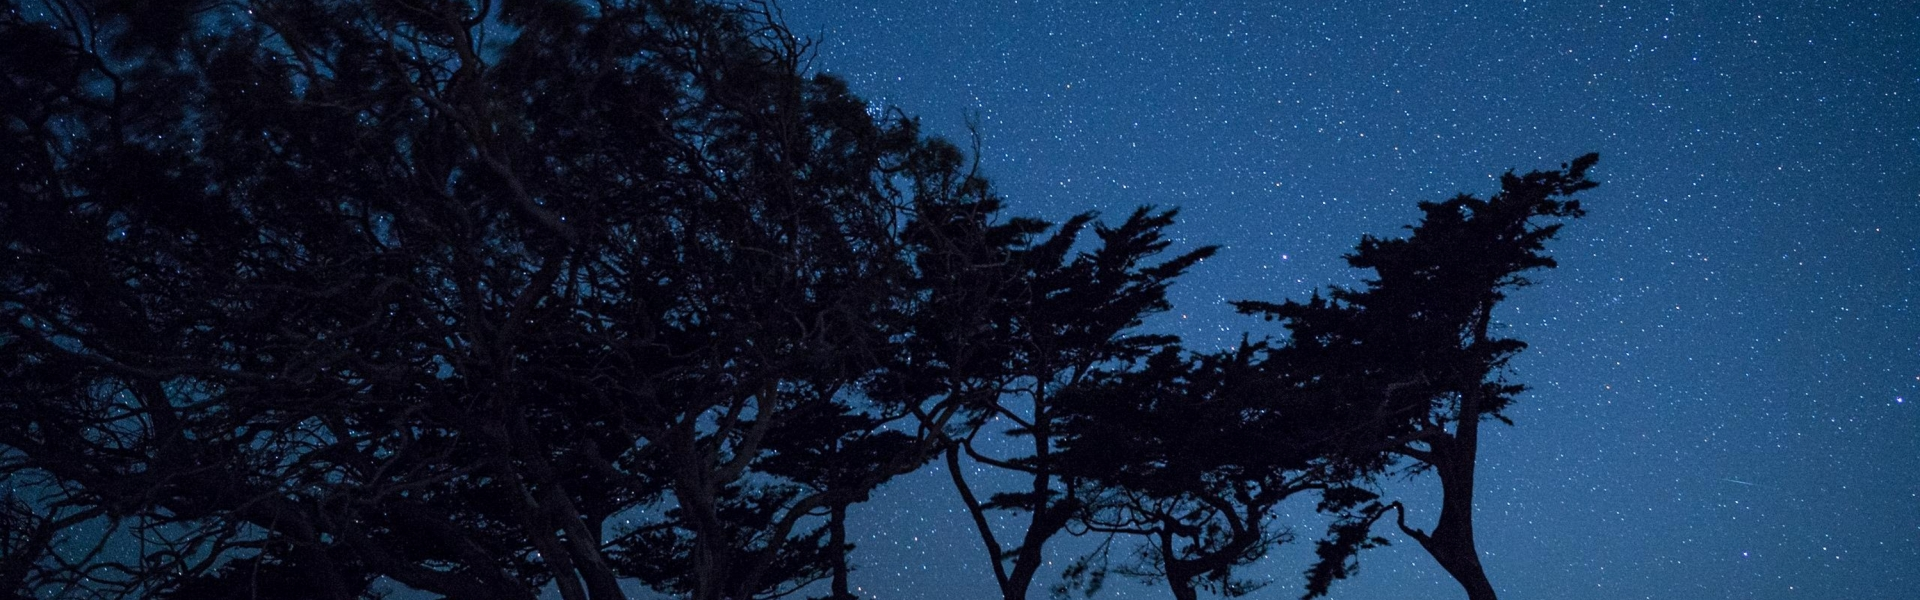 Night sky with cypress tree silhouettes